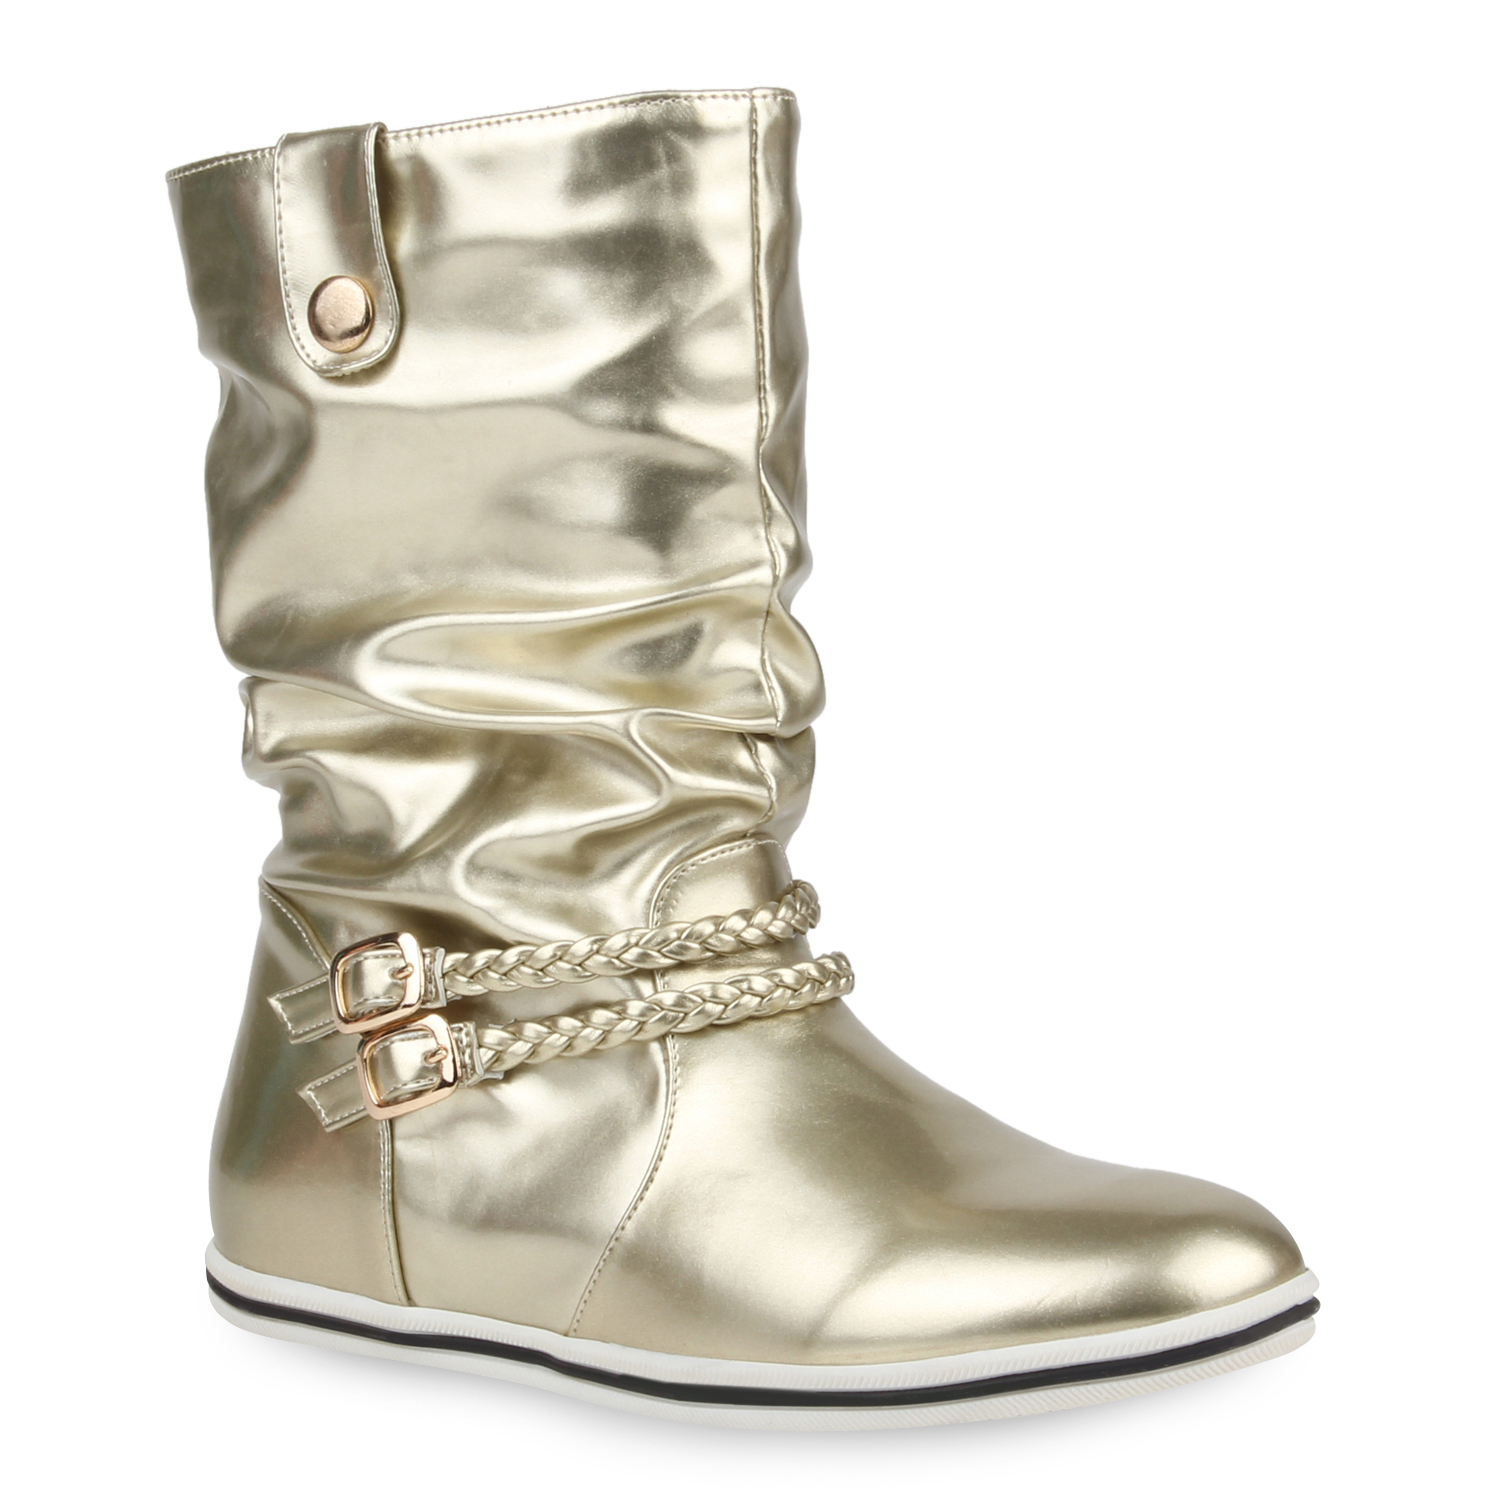 3ff6245749df08 Damen Stiefeletten in Gold (99811-155) - stiefelparadies.de